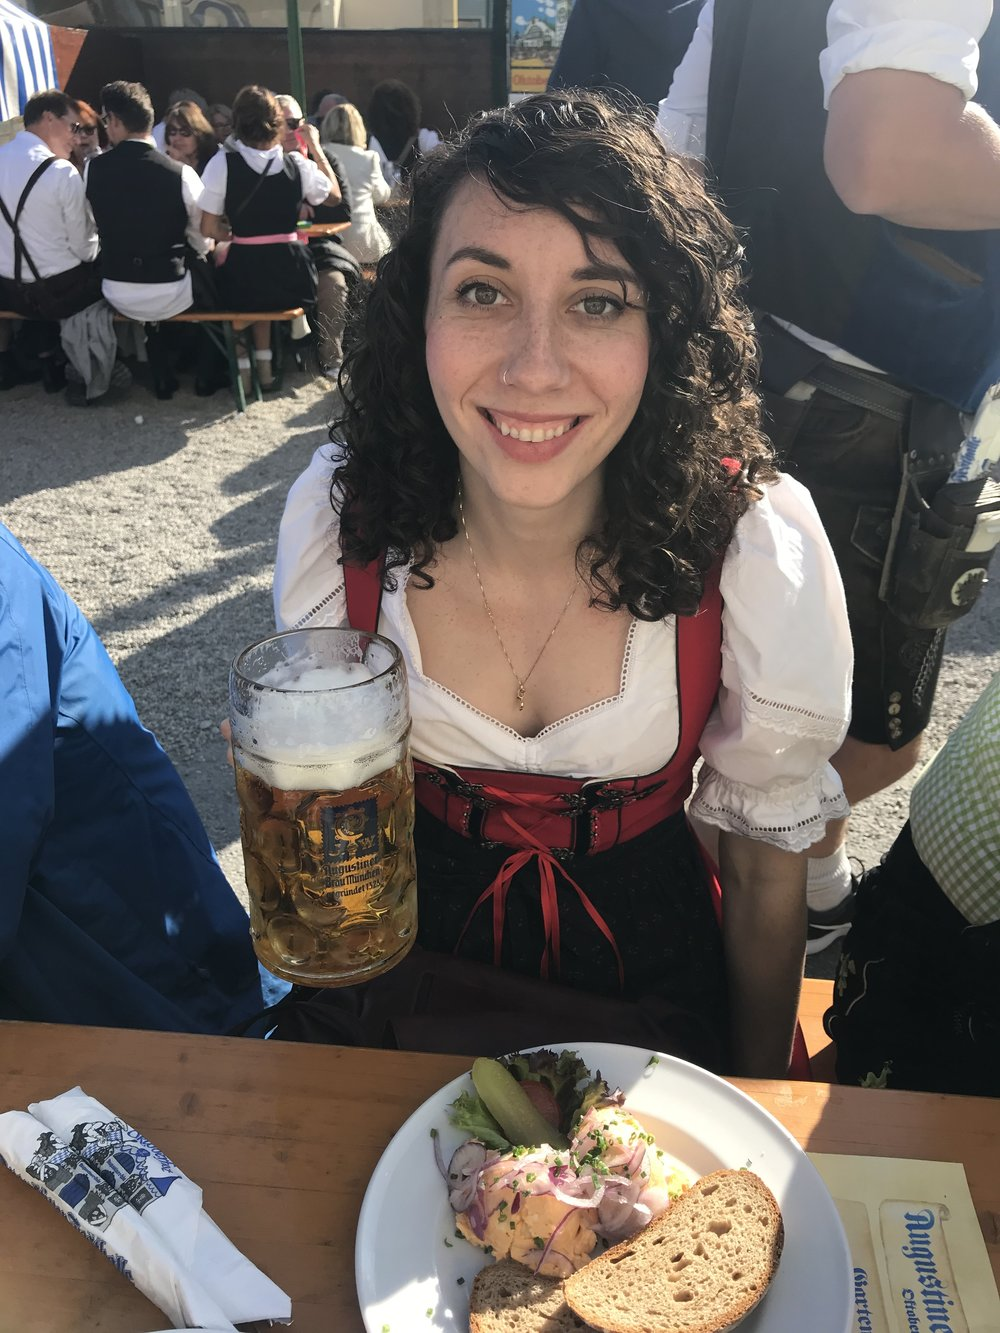 Here's a picture of me at real Oktoberfest a few weeks ago!